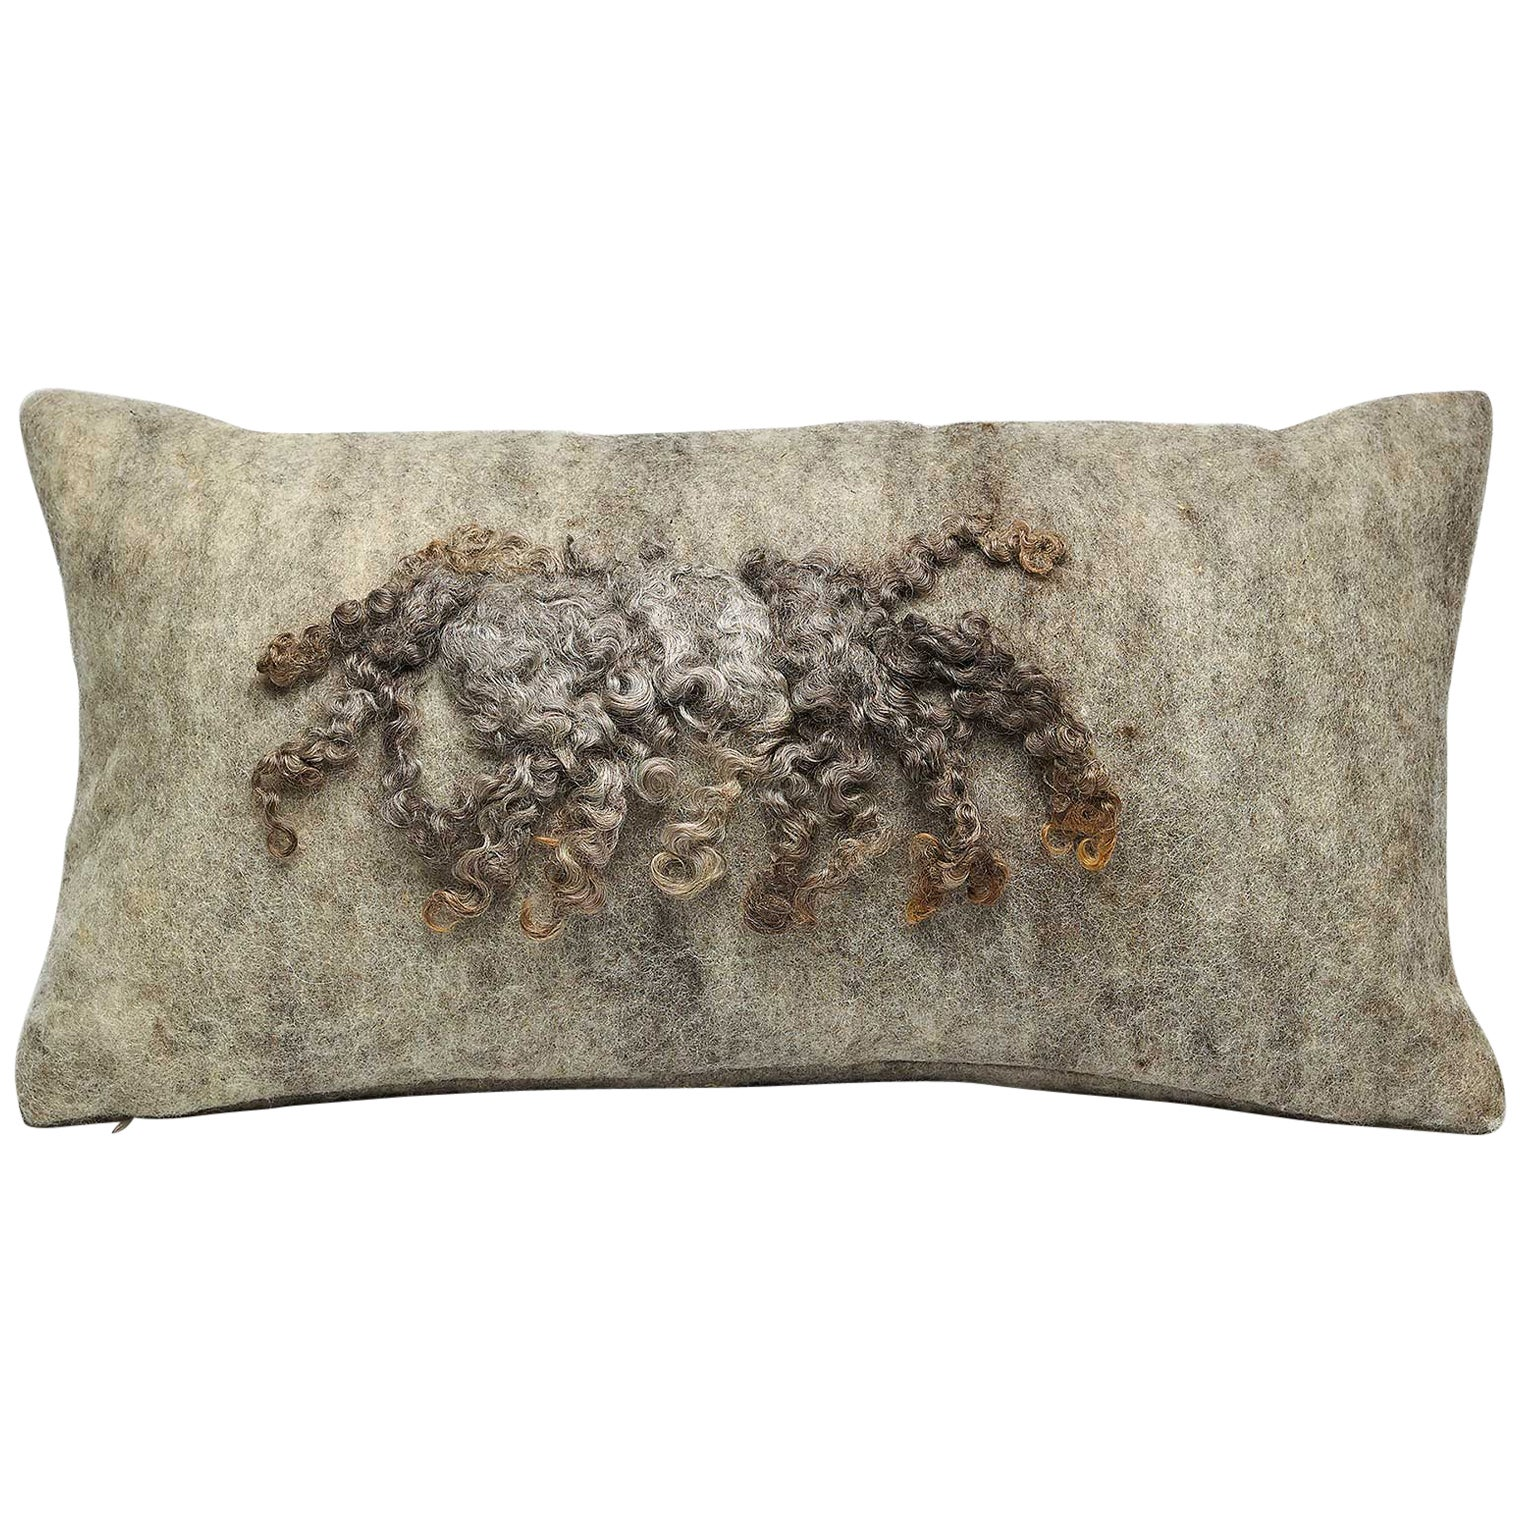 Wool Wensleydale Pillow Grey, Small - Heritage Sheep Collection